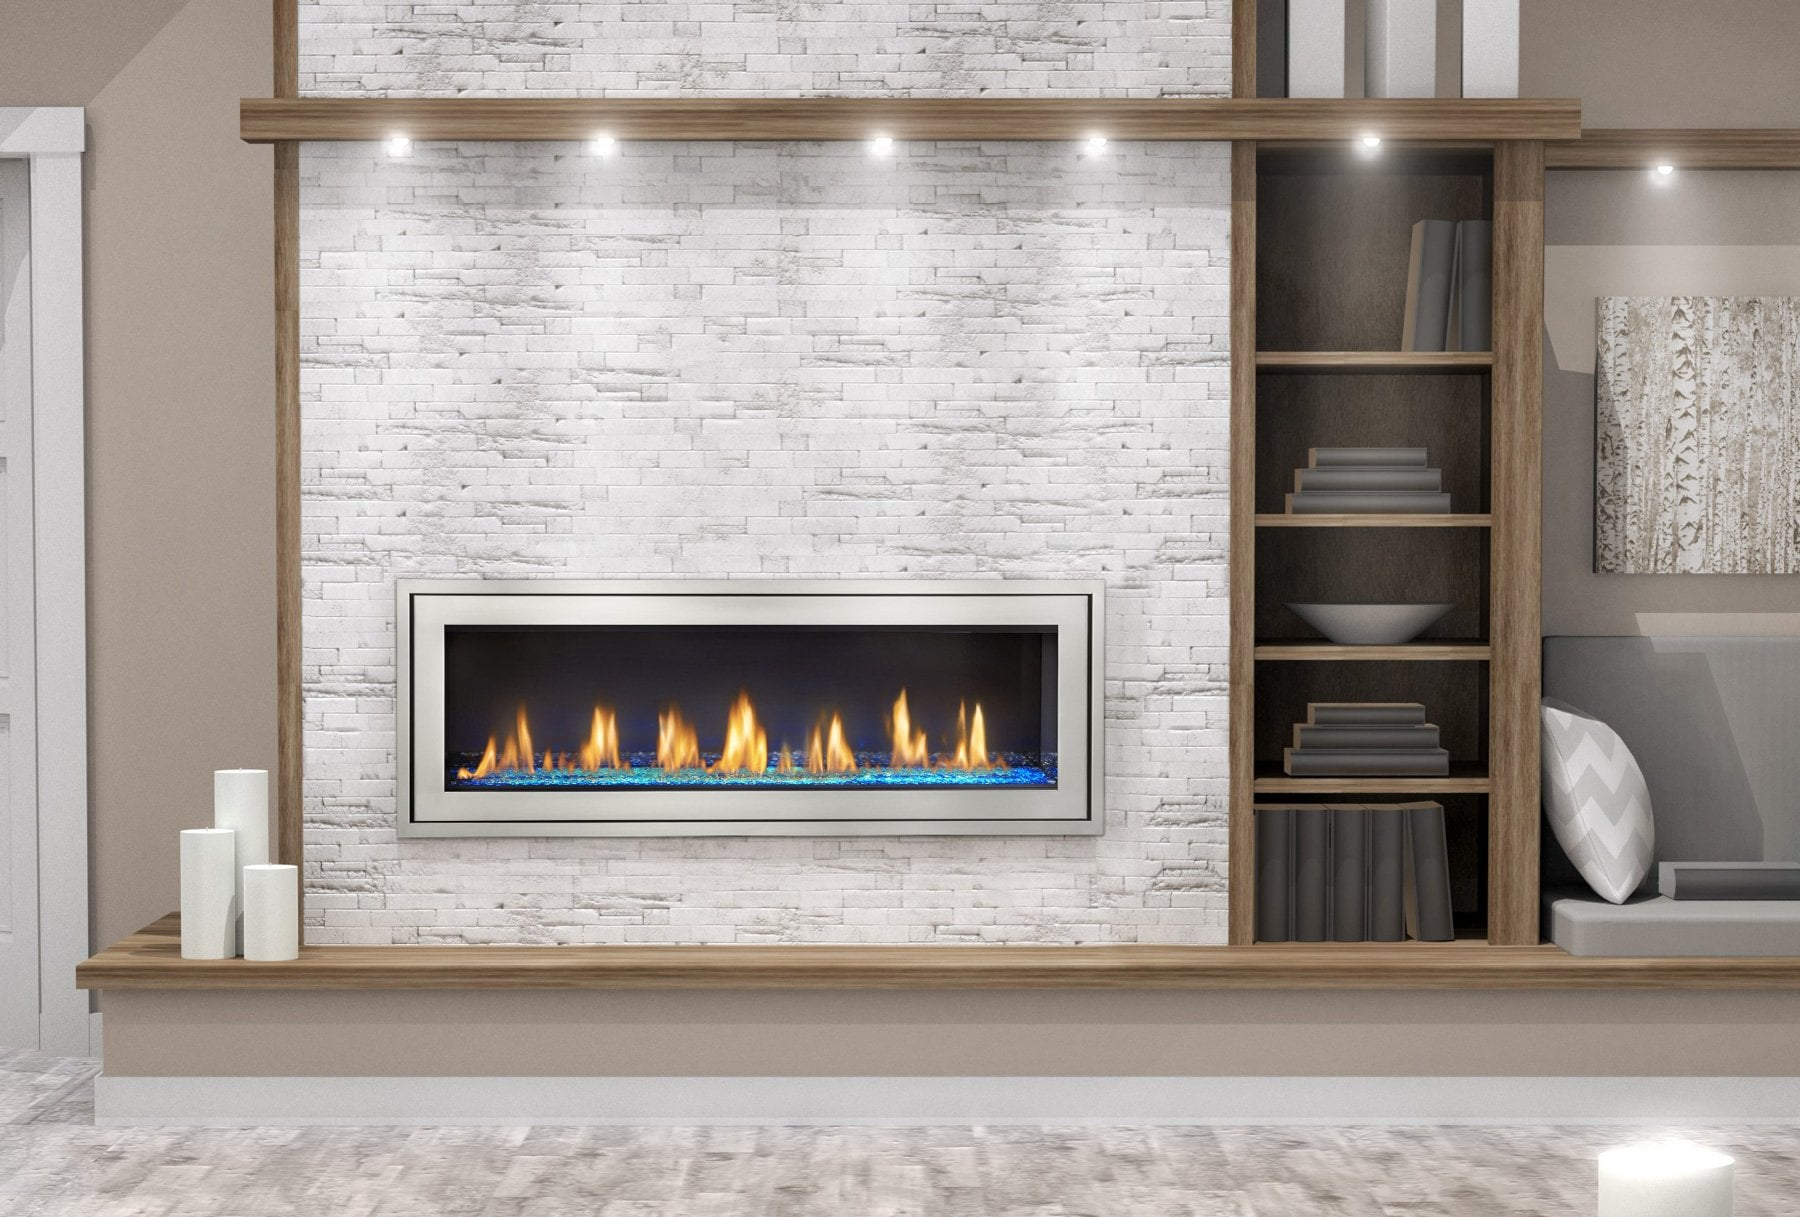 Our Fireplace Line Up Is The Perfect Household Décor For Clean And Modern Living Es As Comfort Specialists We Guarantee Reliable Construction Work